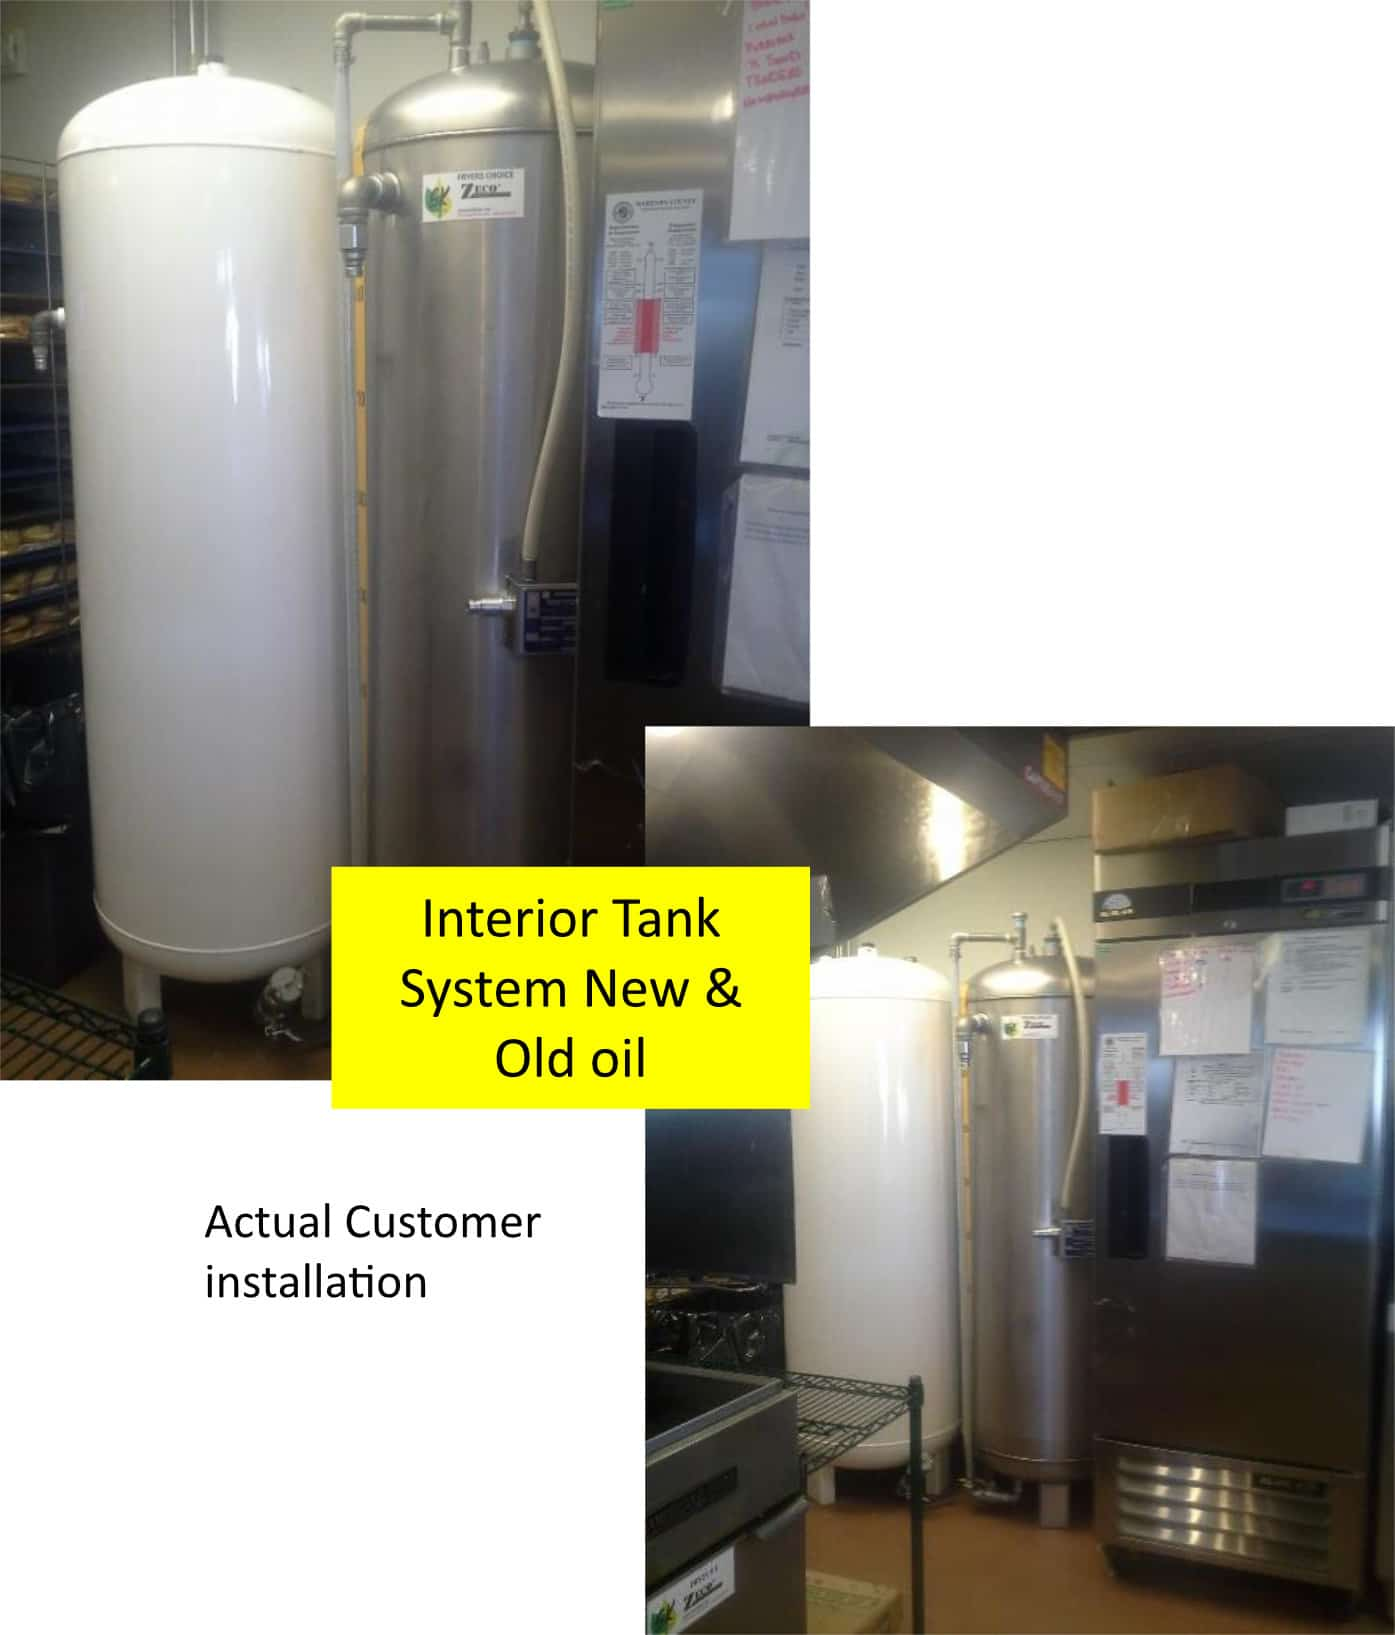 Bulk Oil Systems Interior Tank System New and Old